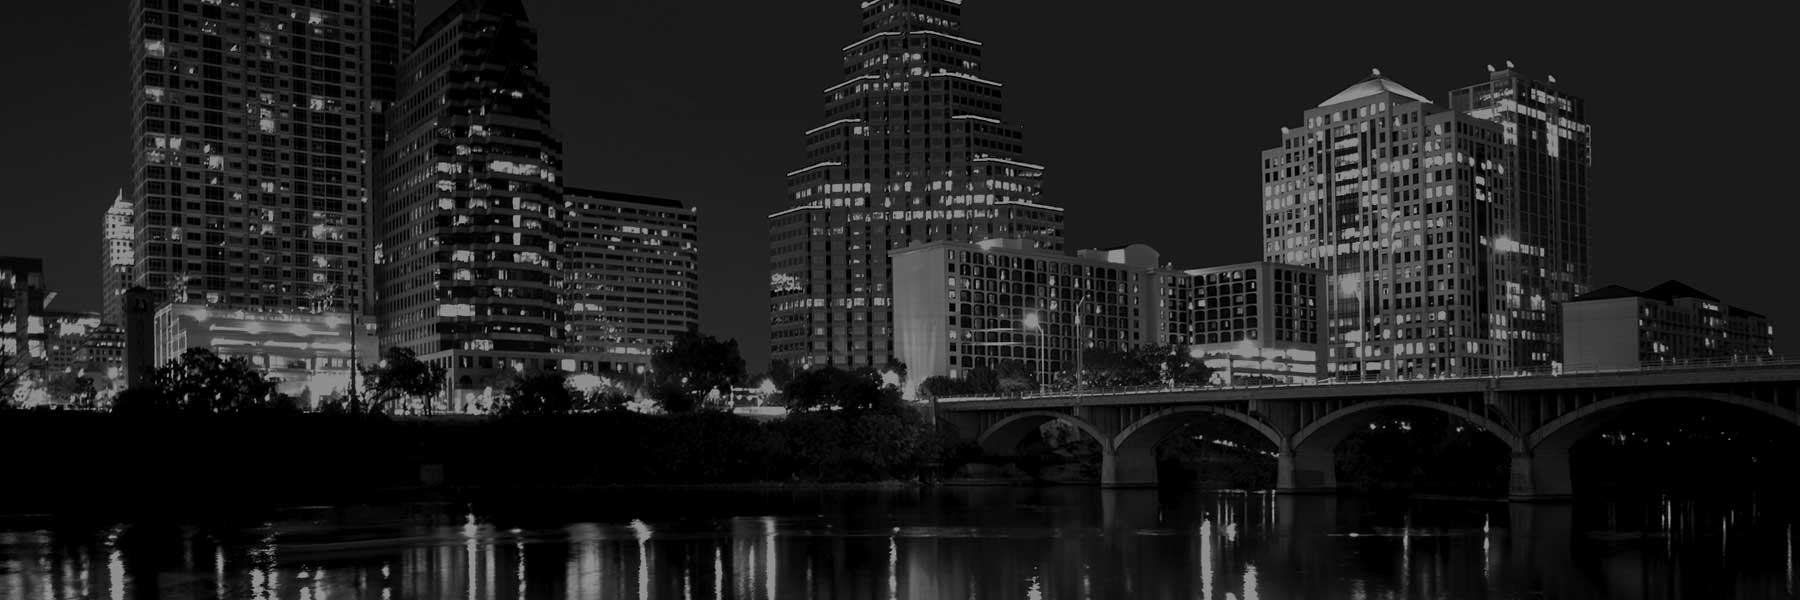 Austin, TX Skyline - The Kadirhan Law Firm